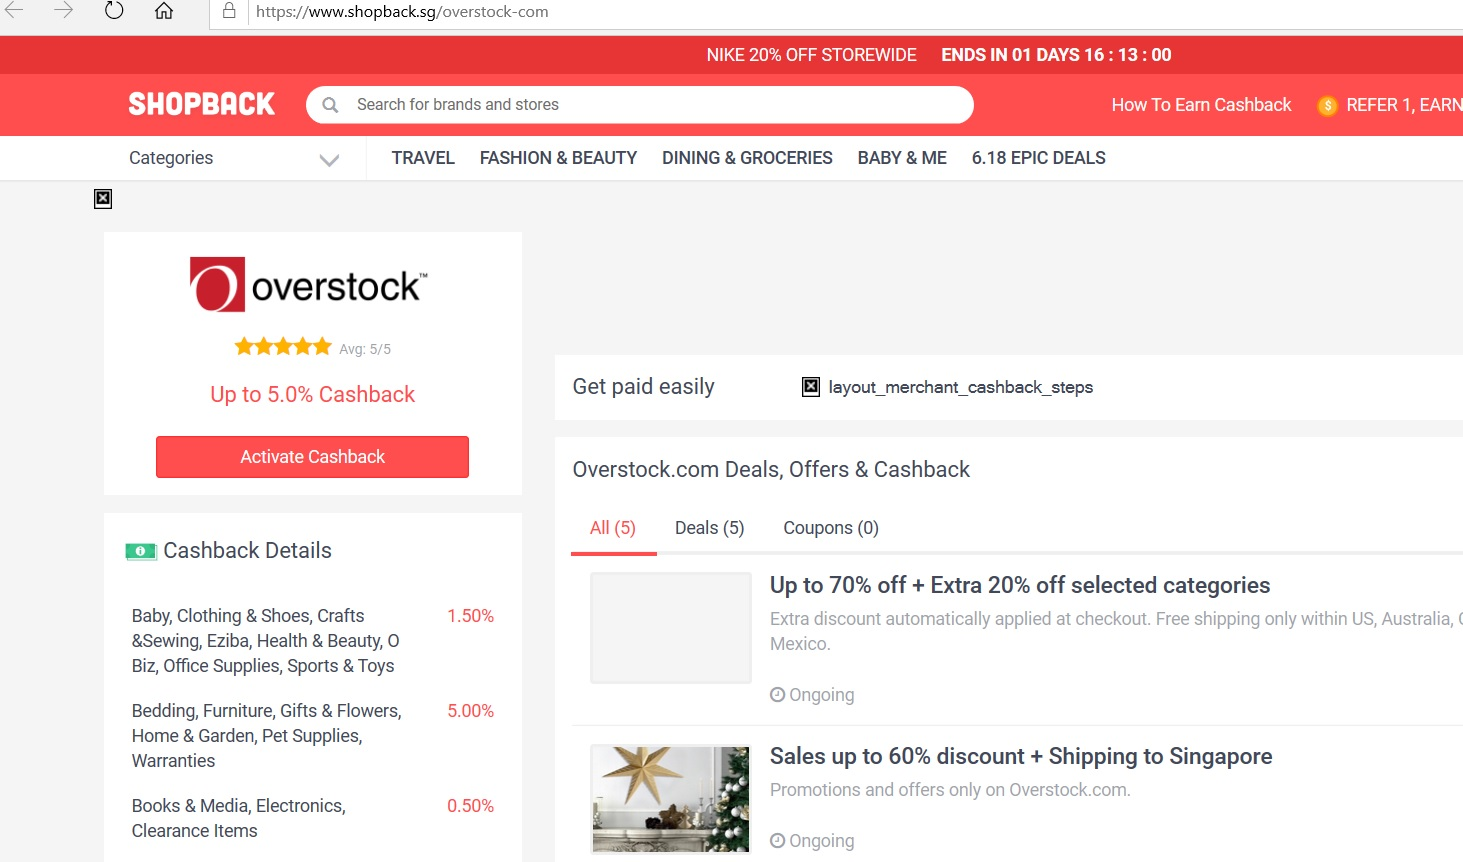 Overstock page on the ShopBack website.